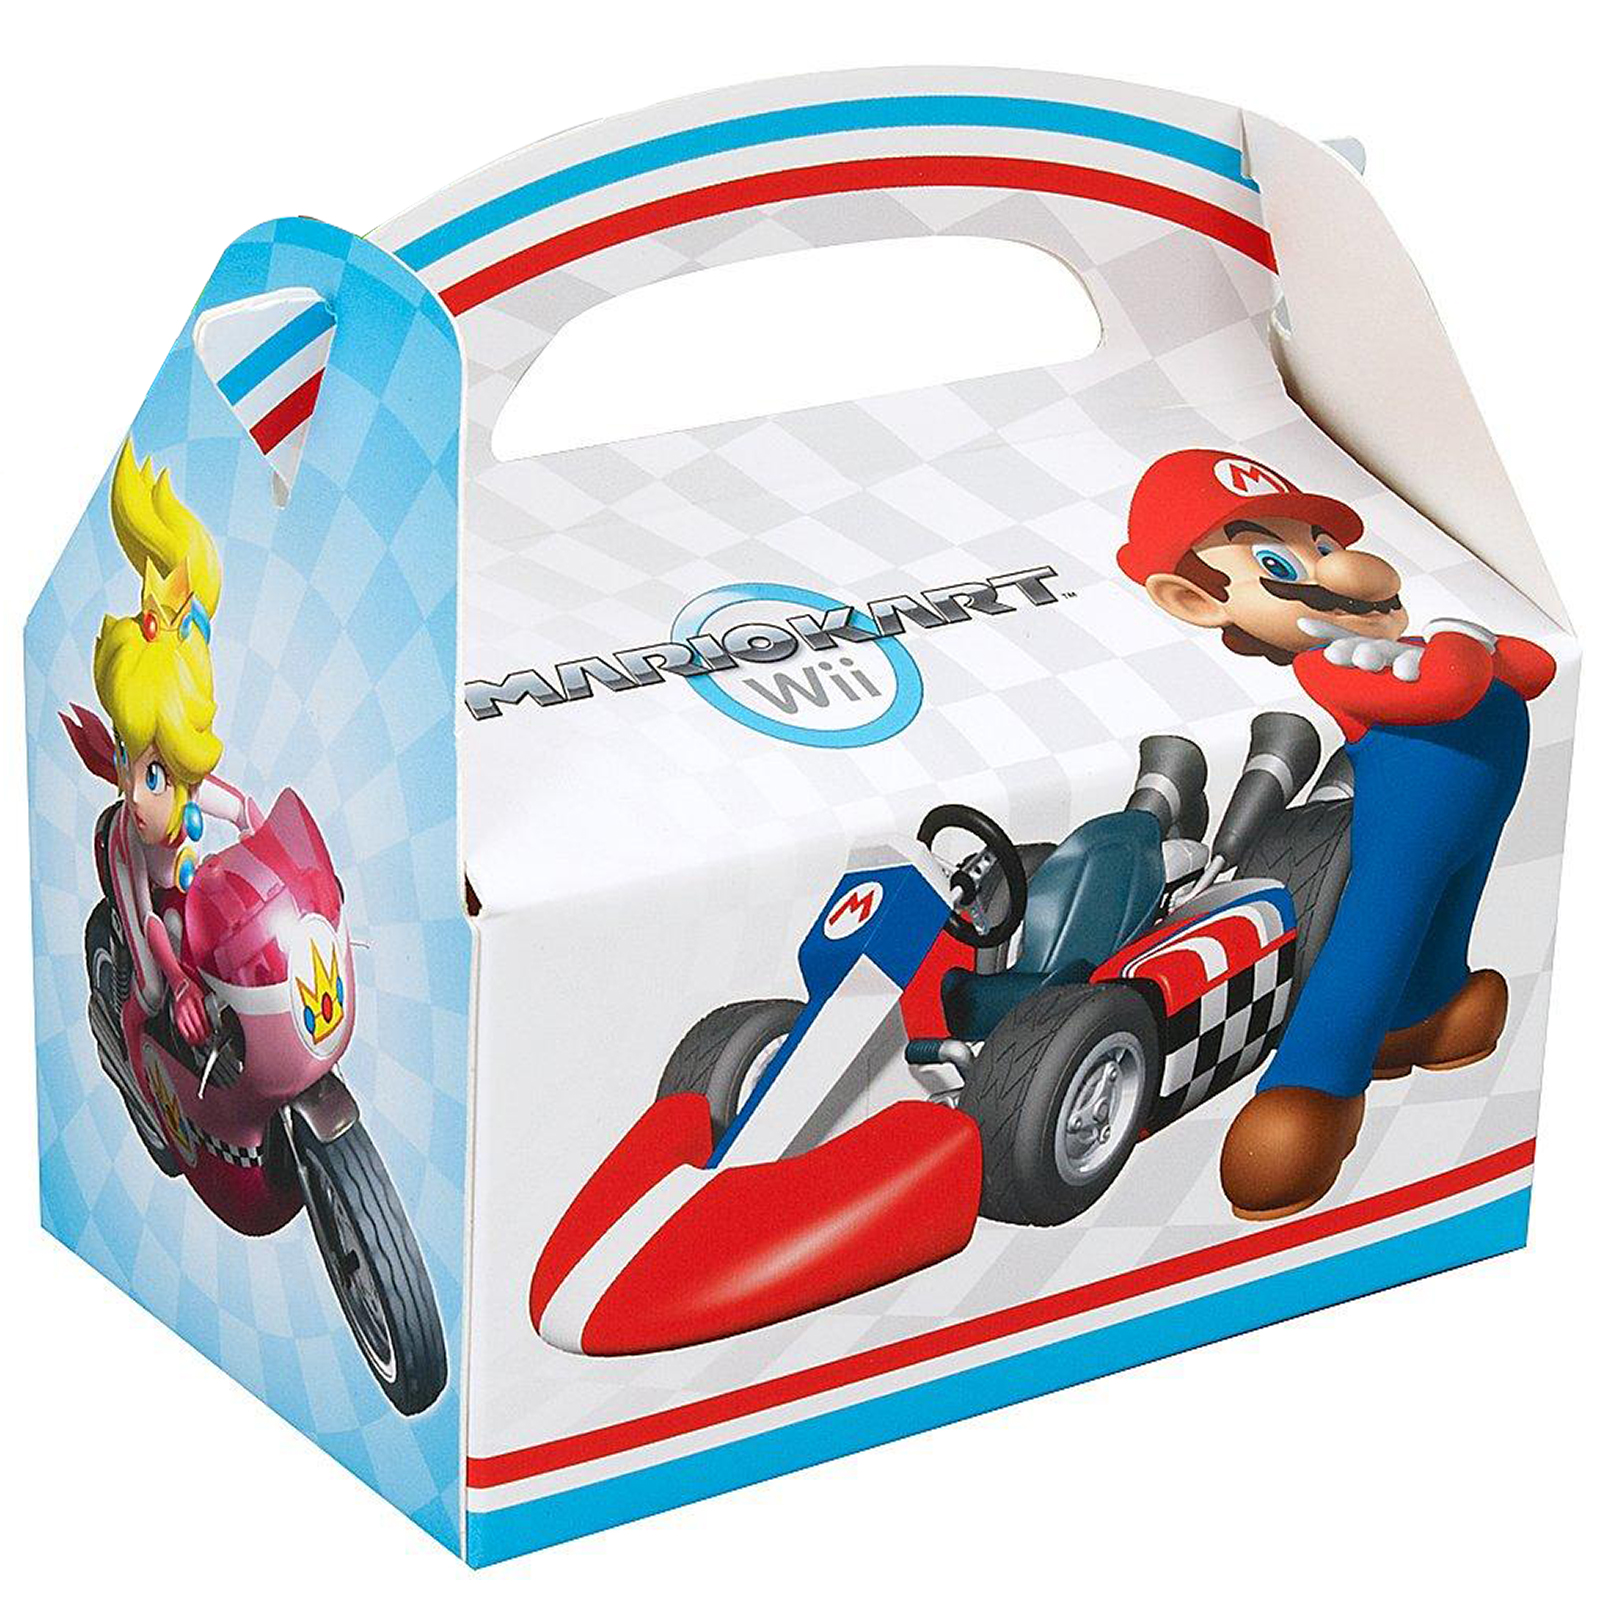 Mario Kart Wii Party in a Box For 8 – Mario Kart Party Invitations